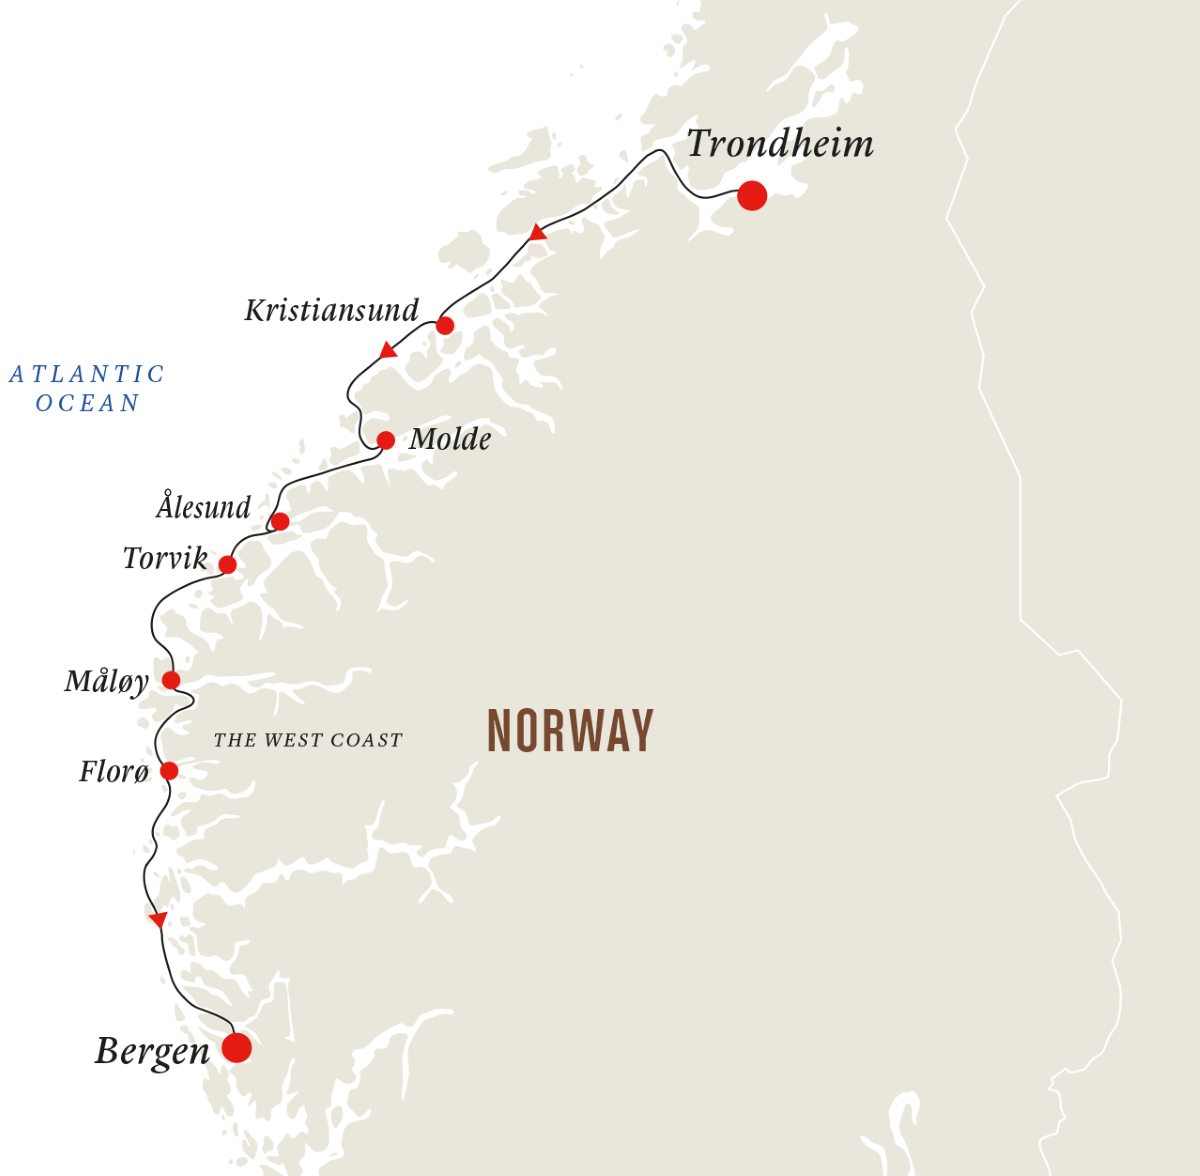 Norway: Trondheim to Bergen